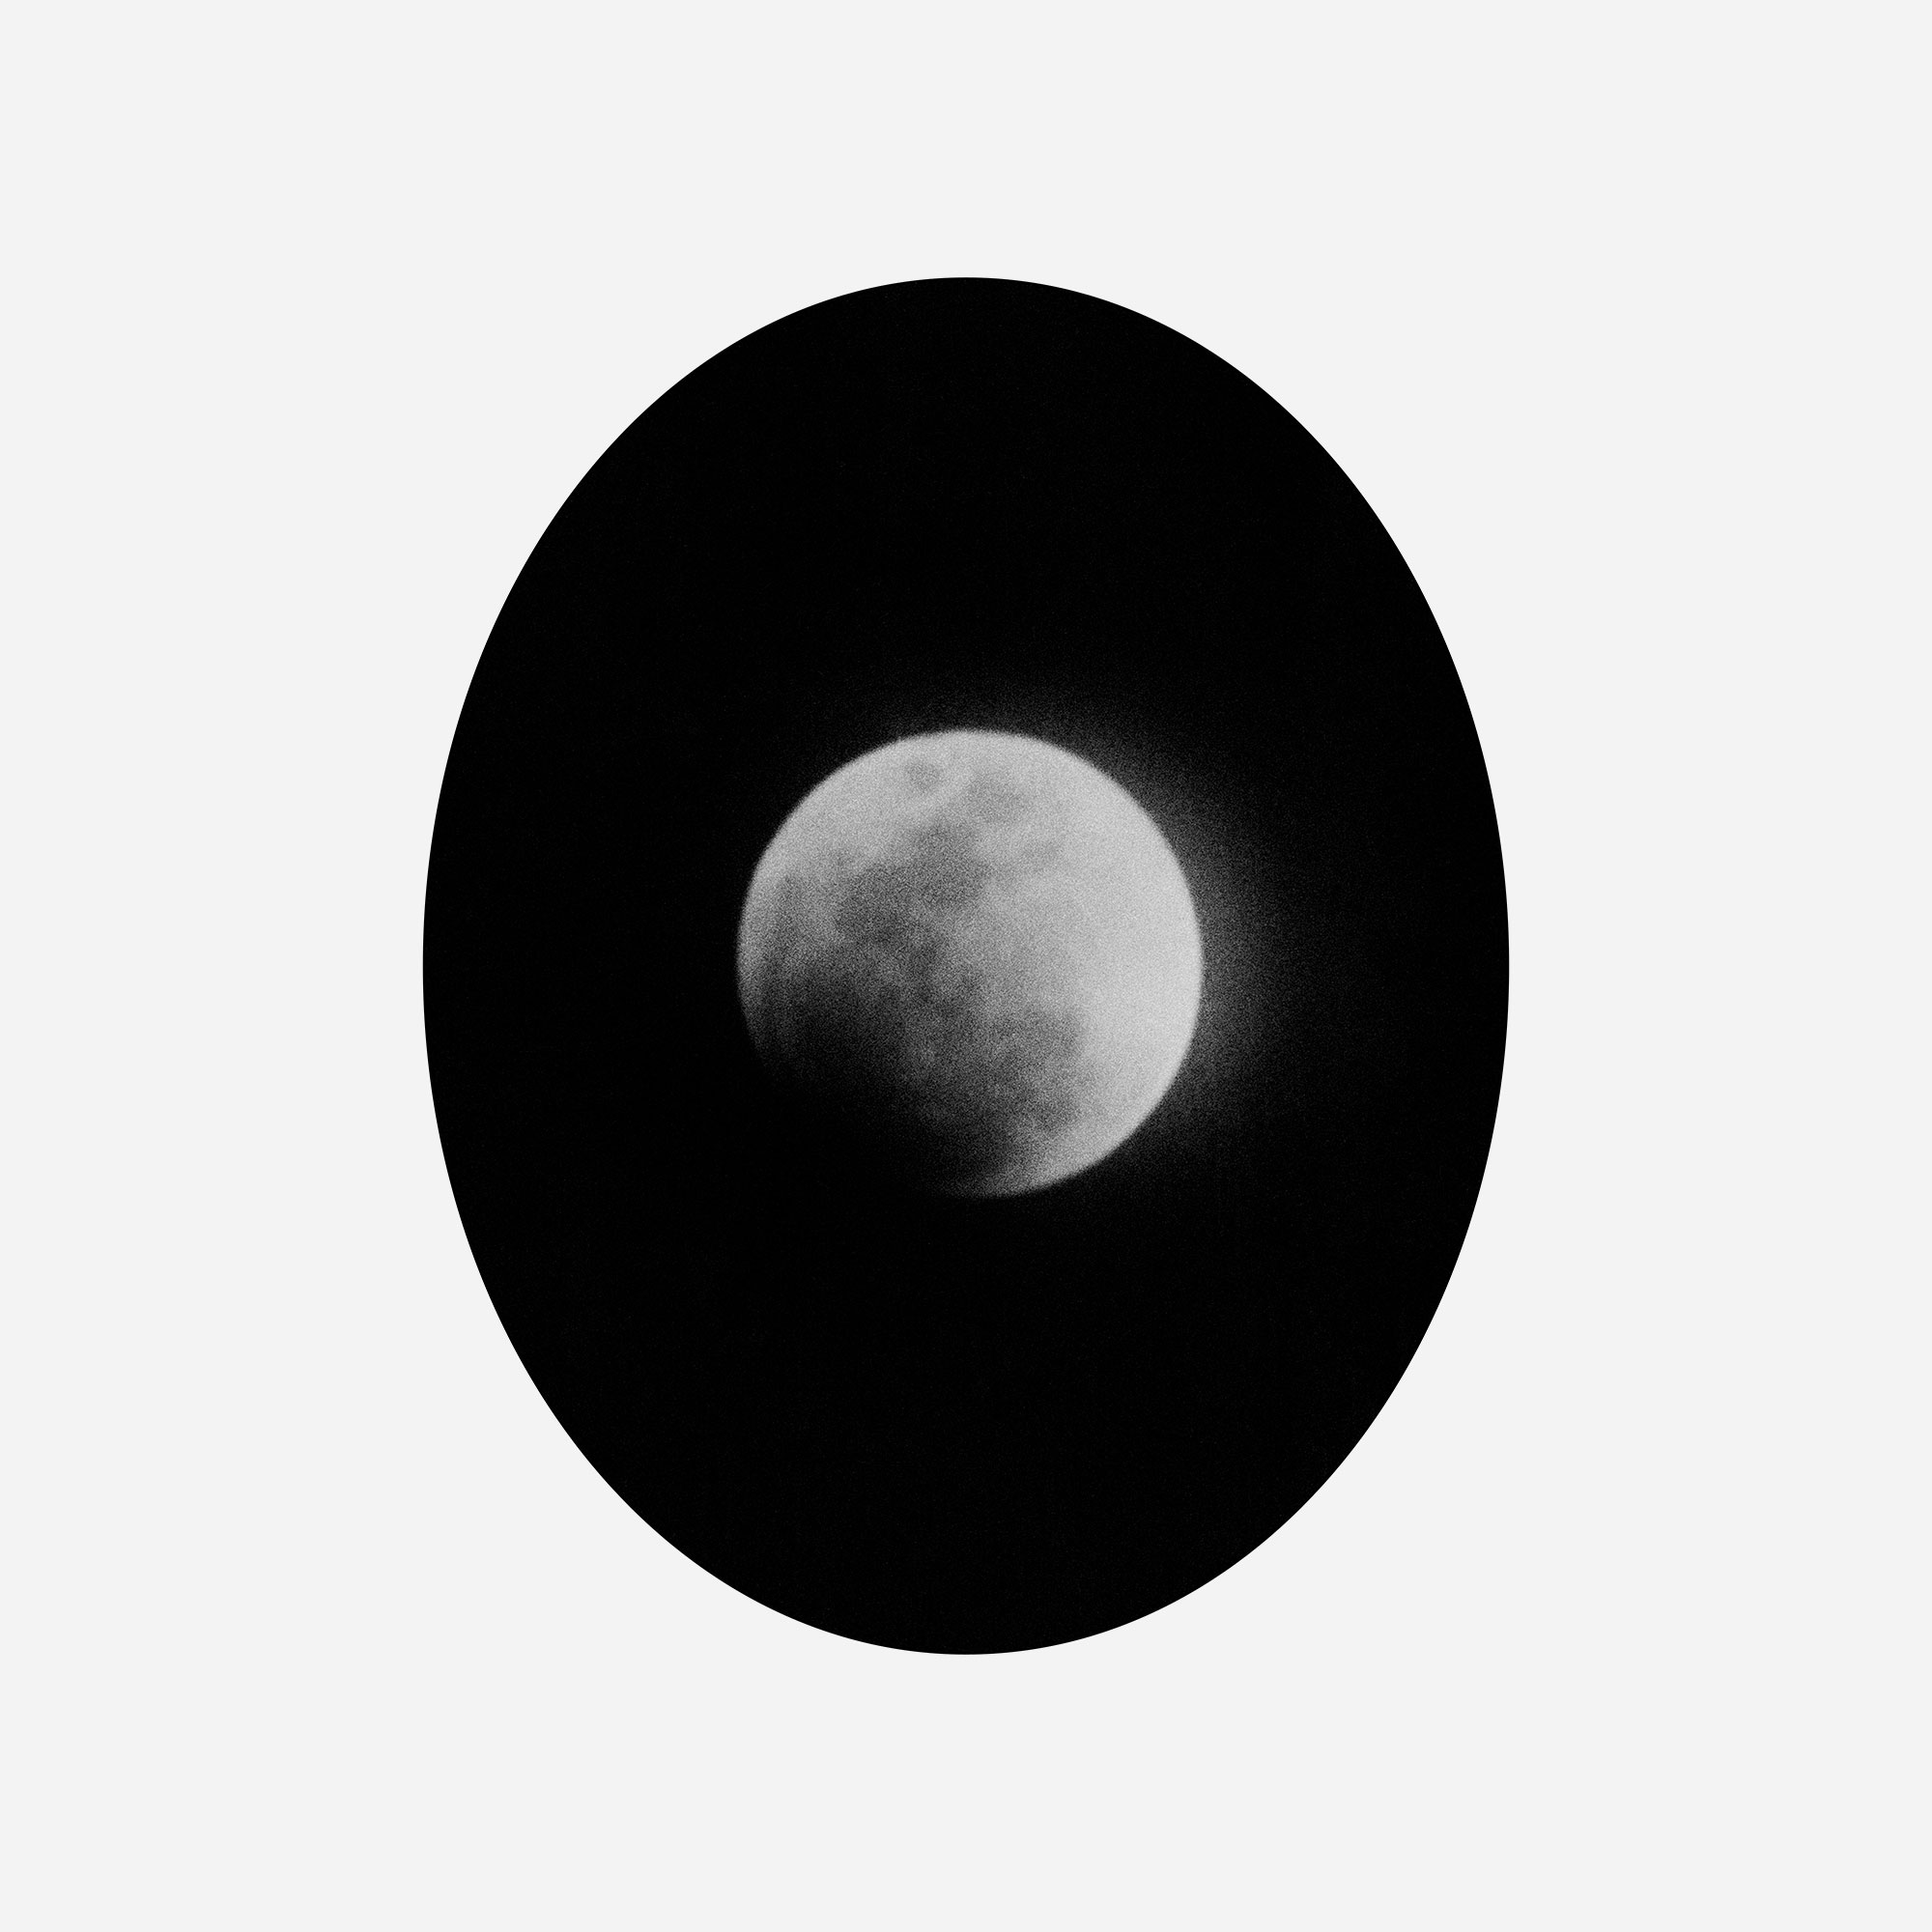 Art, Gæst No. 14, Eclipsing Moon, 2012